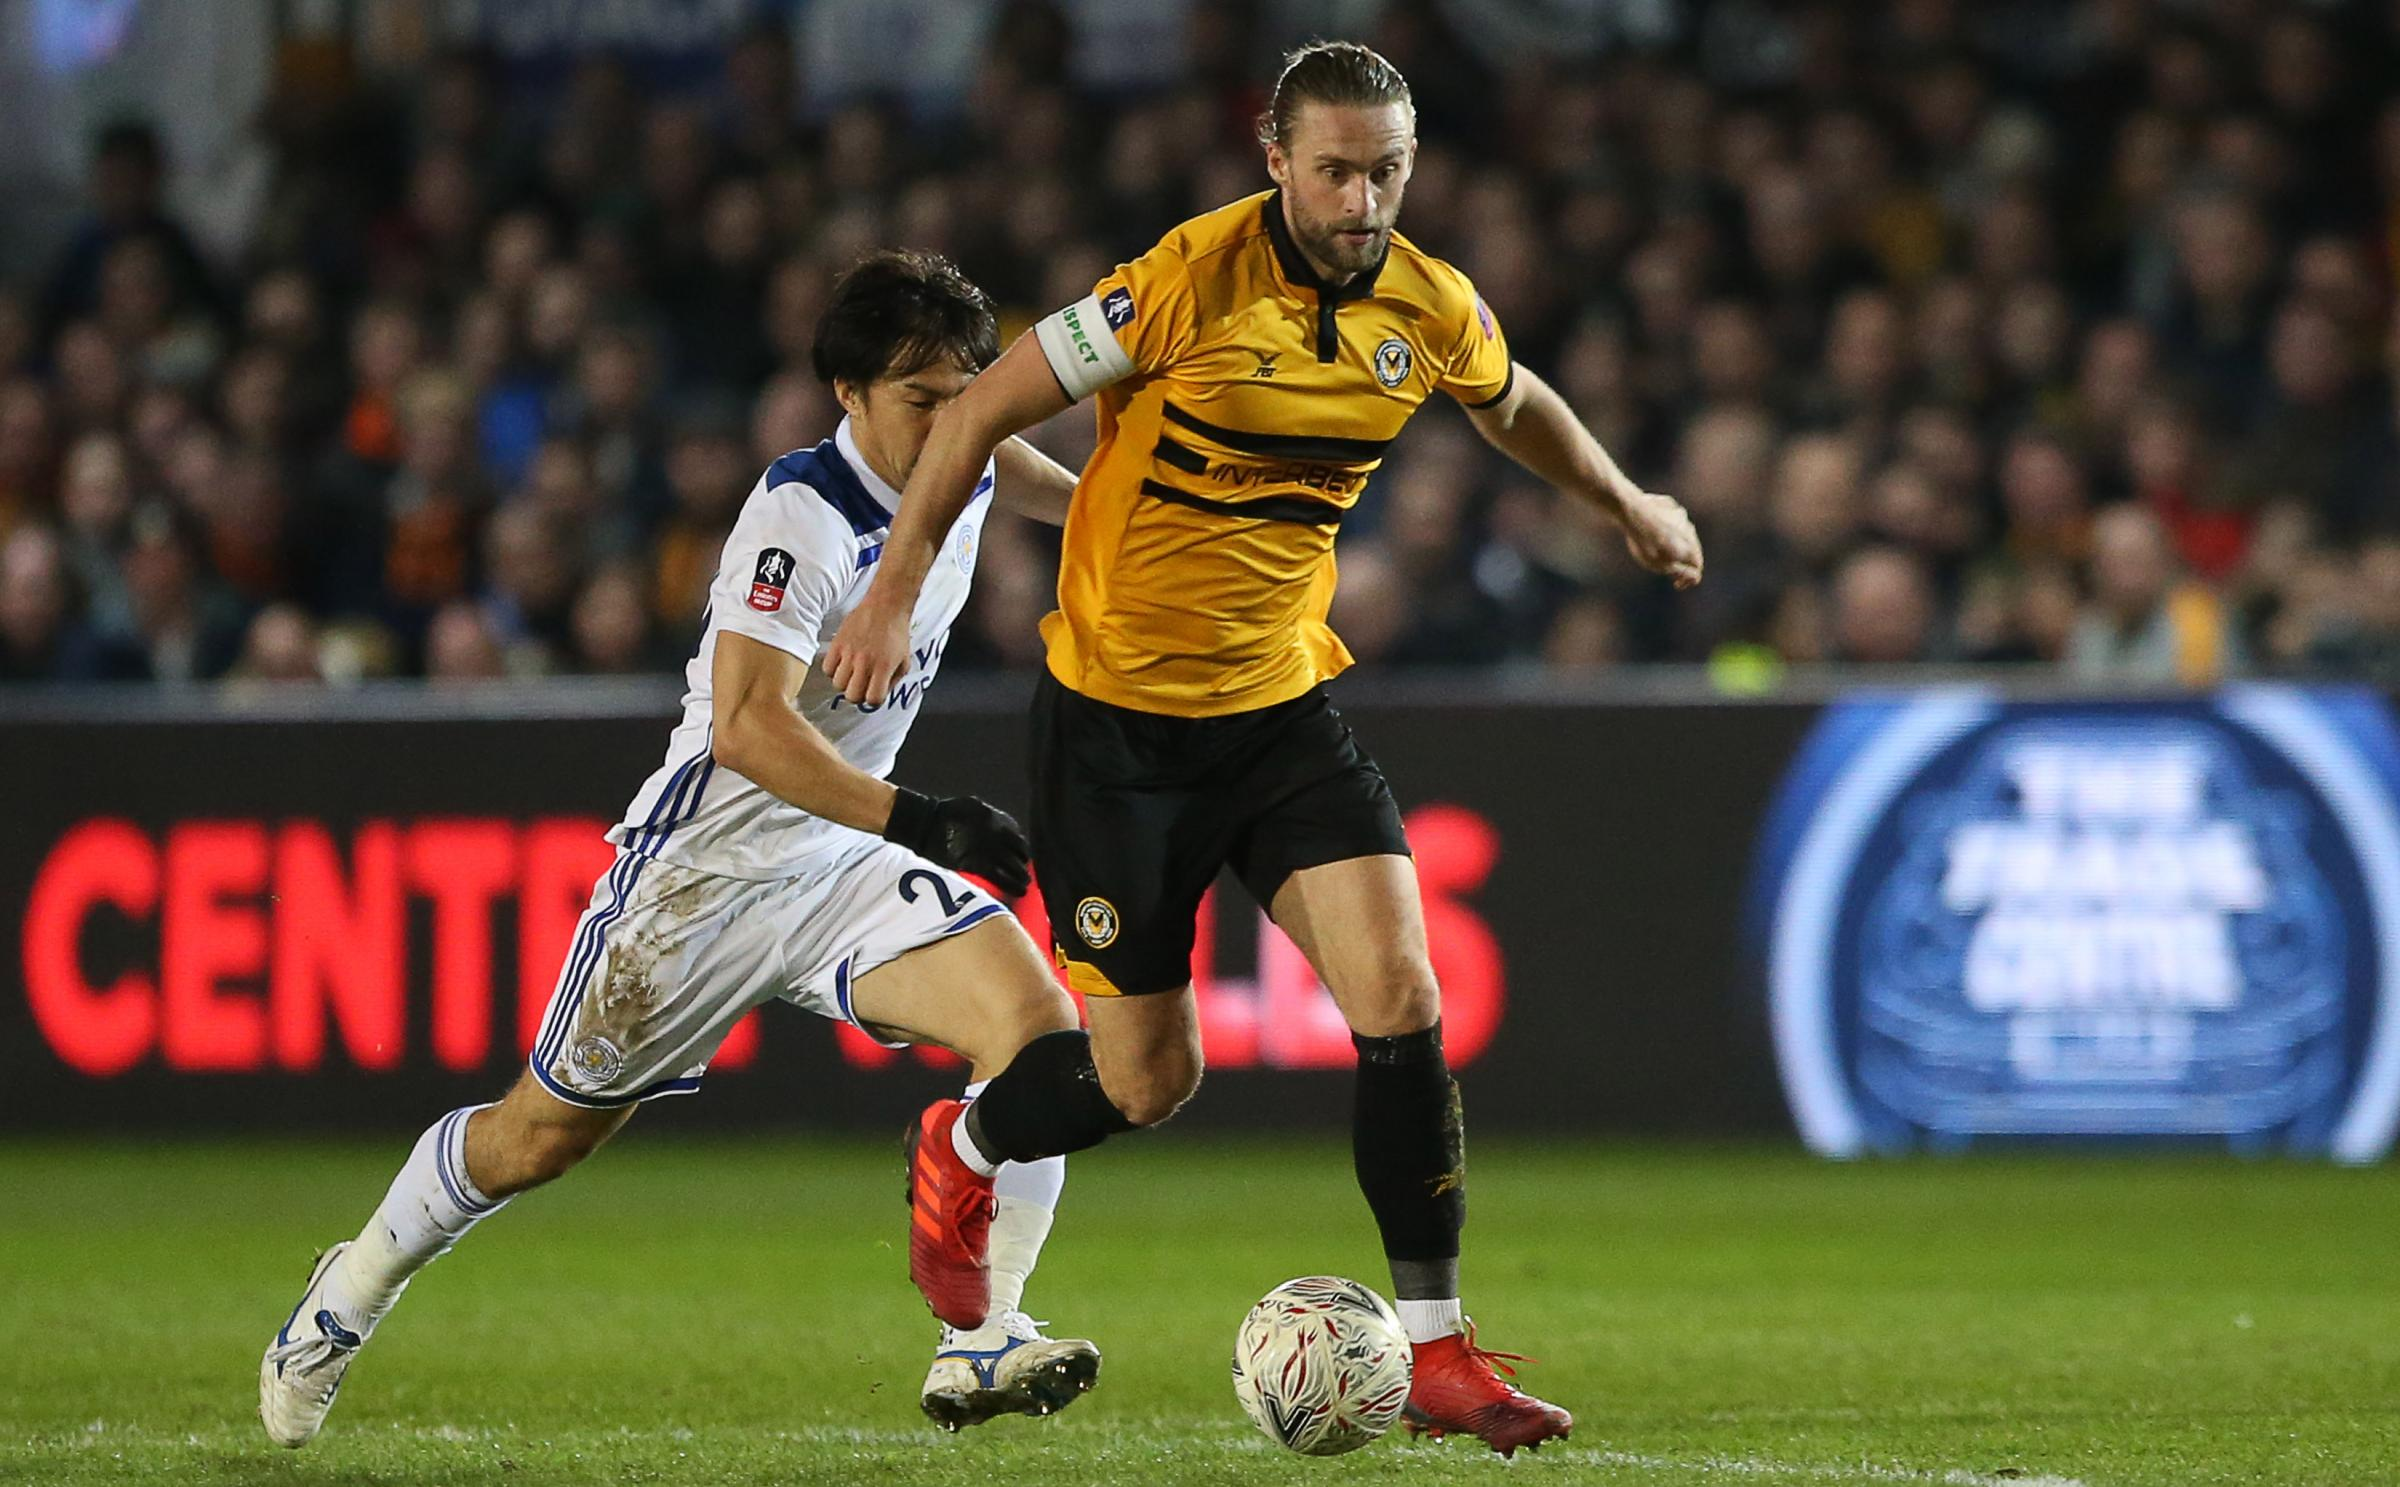 INJURED: Fraser Franks will miss Newport County's trip to Middlesbrough